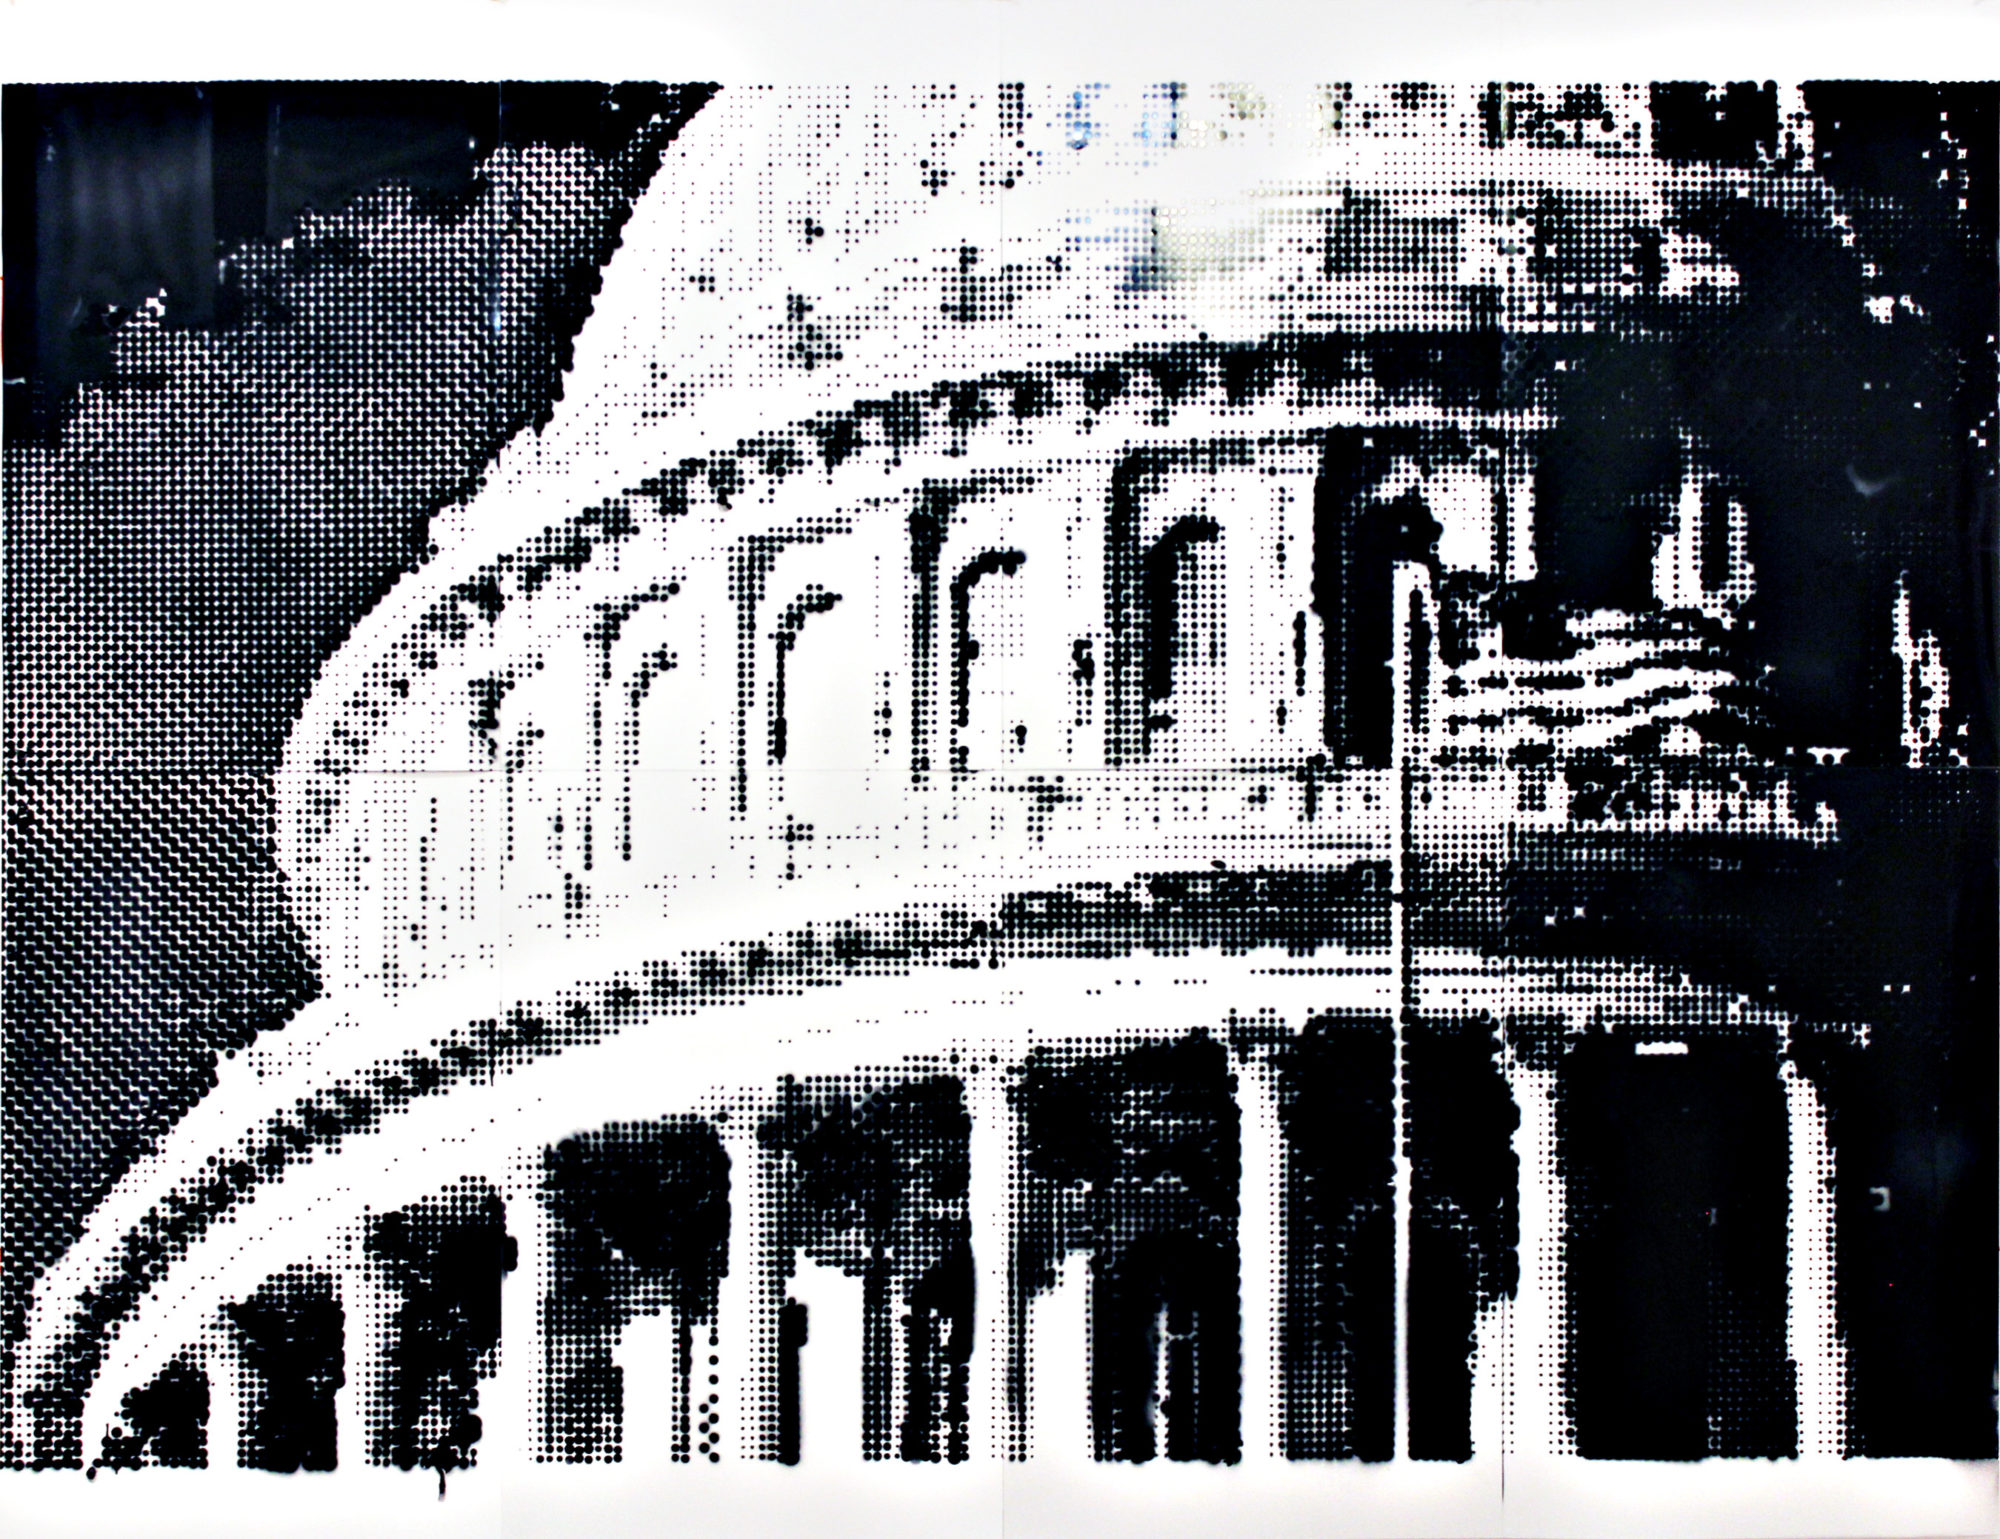 Drawing of dome of US Capitol building.